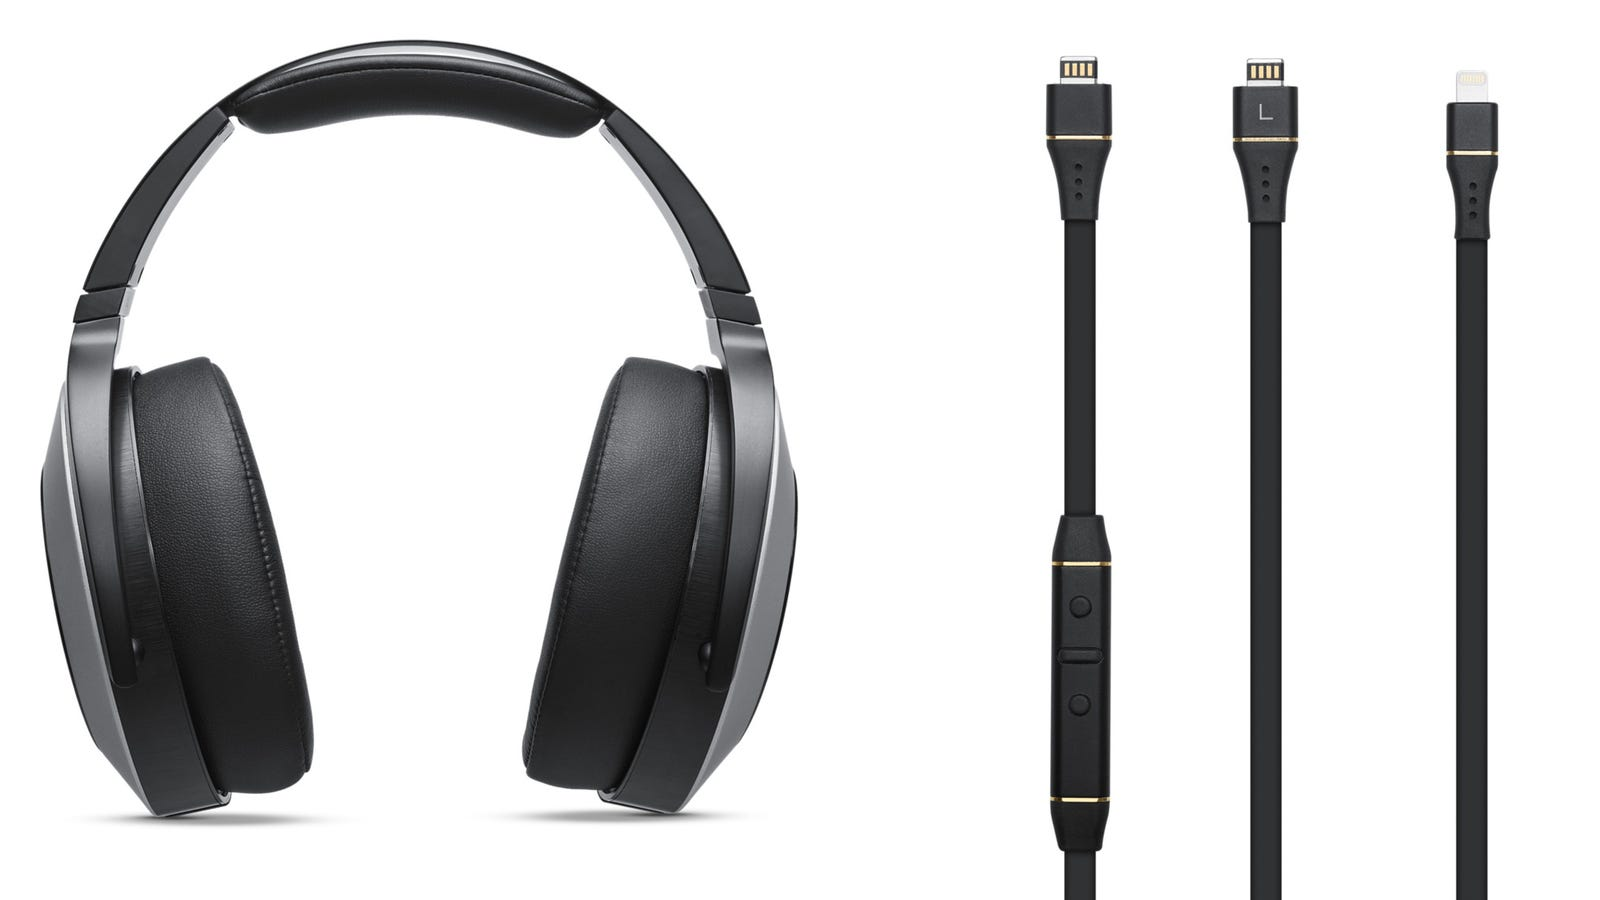 headphone stand elago - These $800 Lightning Headphones Make Your iPhone's 3.5mm Jack Redundant